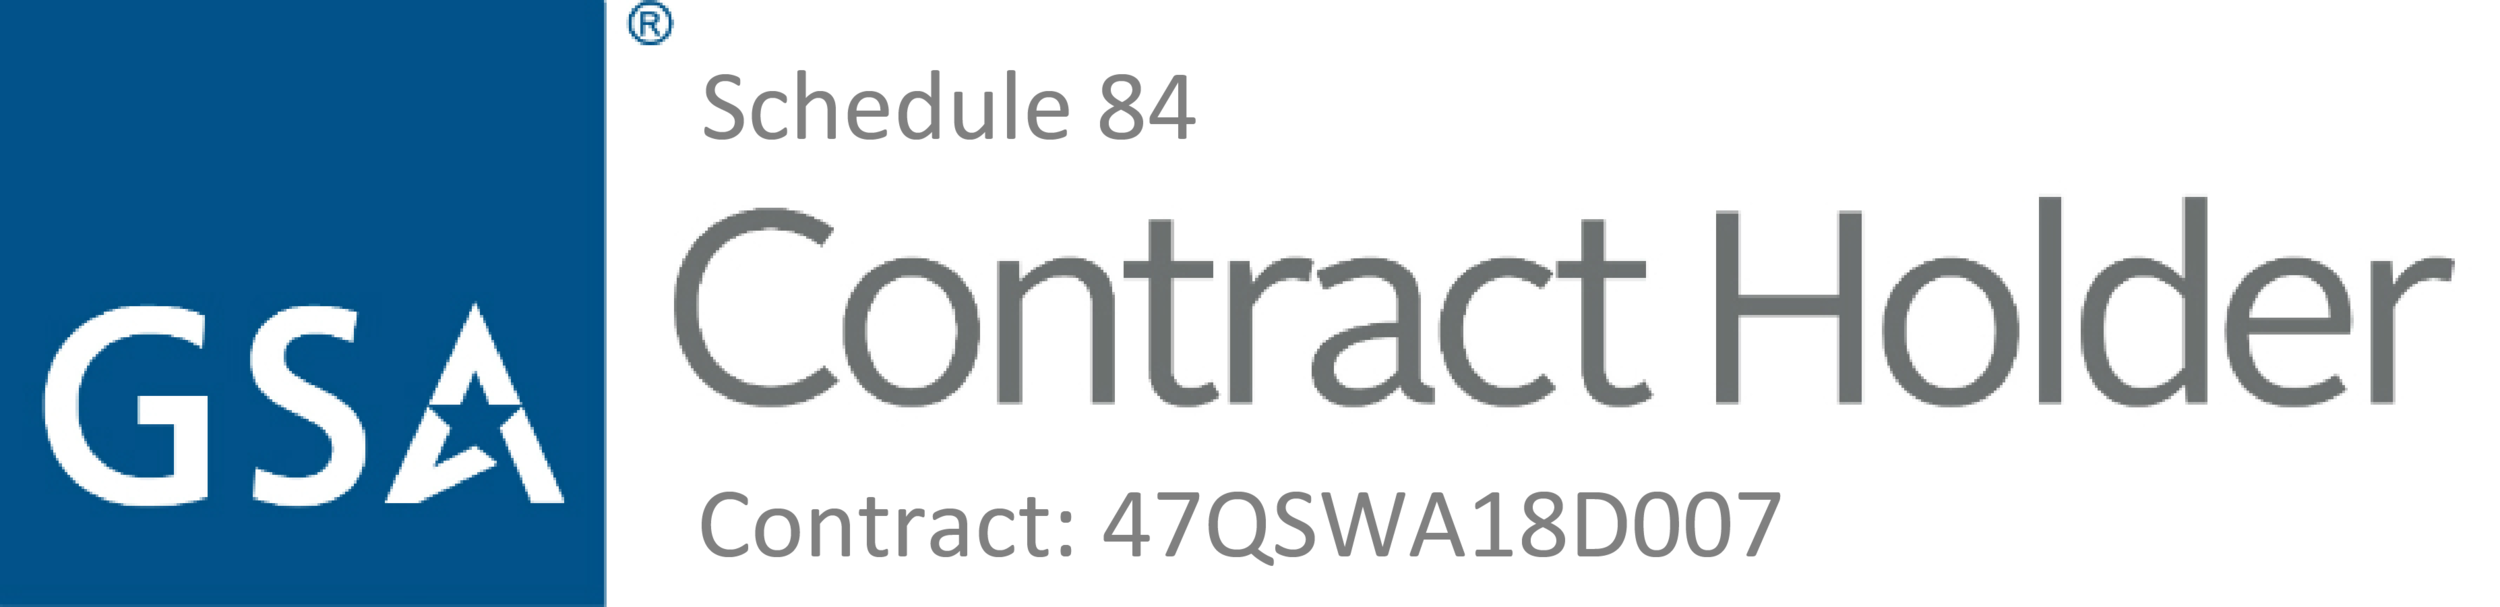 GSA-Contract-Holder-Logo-v4.png